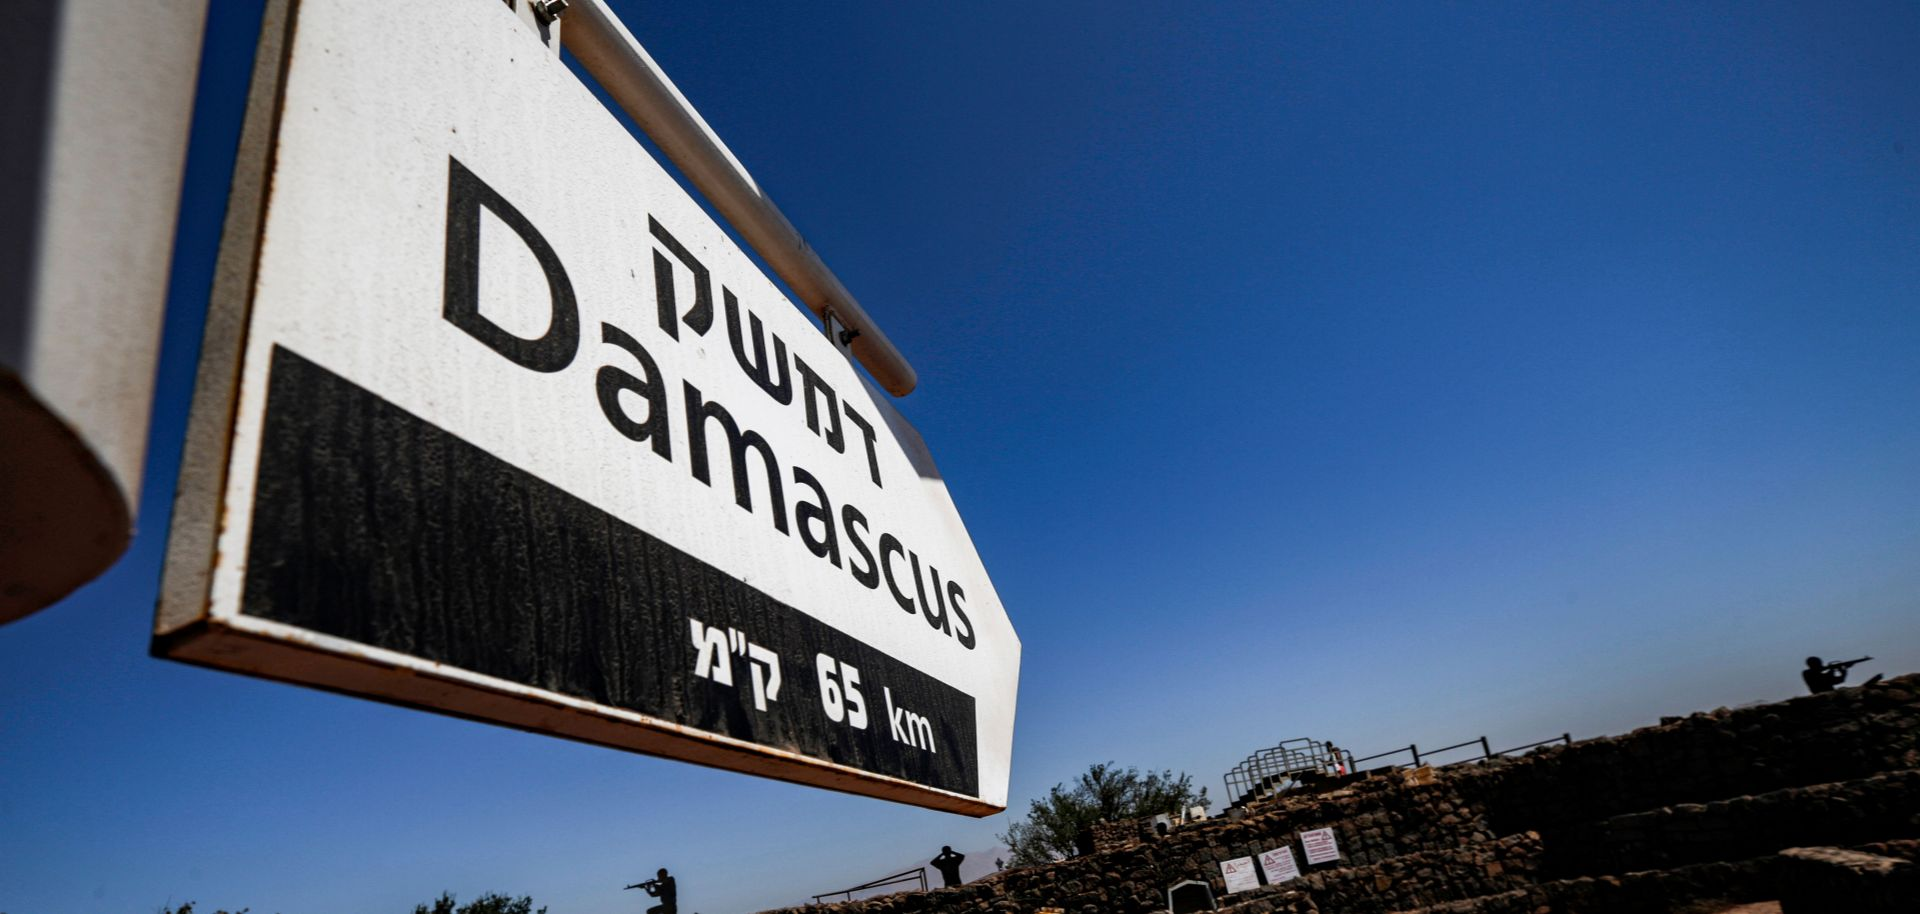 This picture taken on Aug. 25, 2019, from a tourist lookout point at an Israeli army outpost on Mount Bental in the Israeli-annexed Golan Heights shows a directional sign for Damascus.